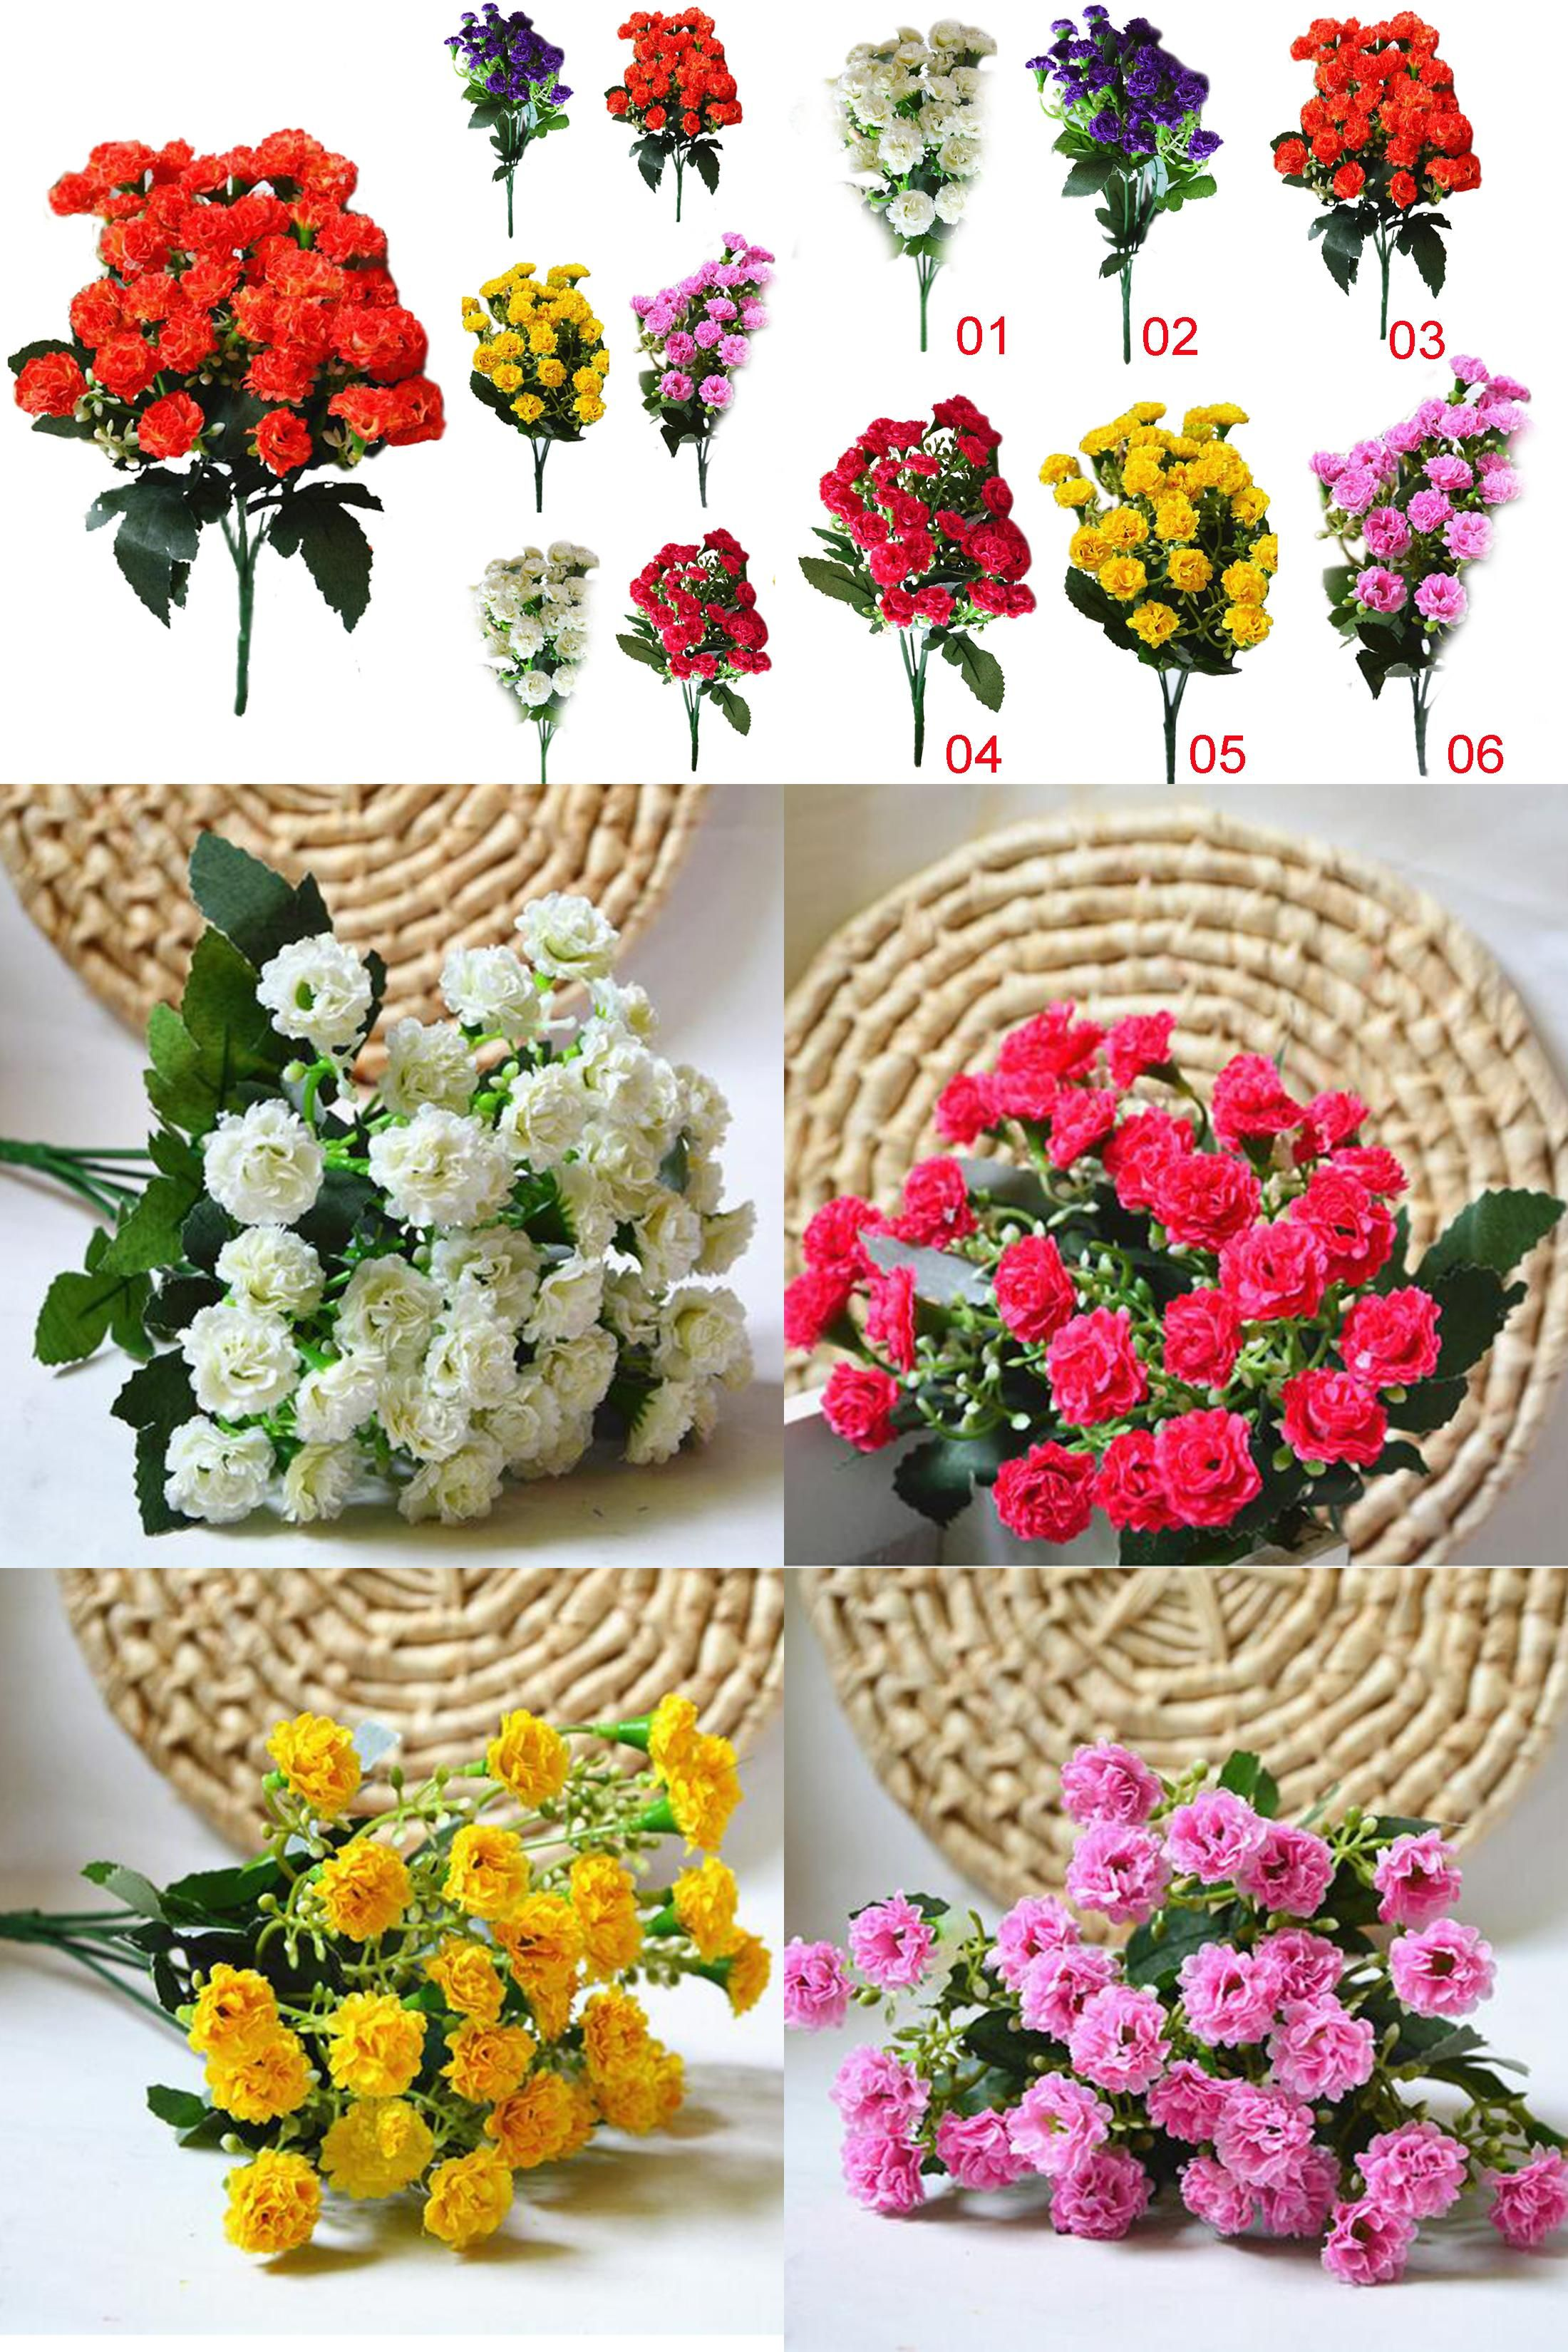 Visit to buy fashion artificial silk flowers carnation 30 buds visit to buy fashion artificial silk flowers carnation 30 buds flowers 6 branches 1 bouquet mother lilac flower craft for wedding home party mightylinksfo